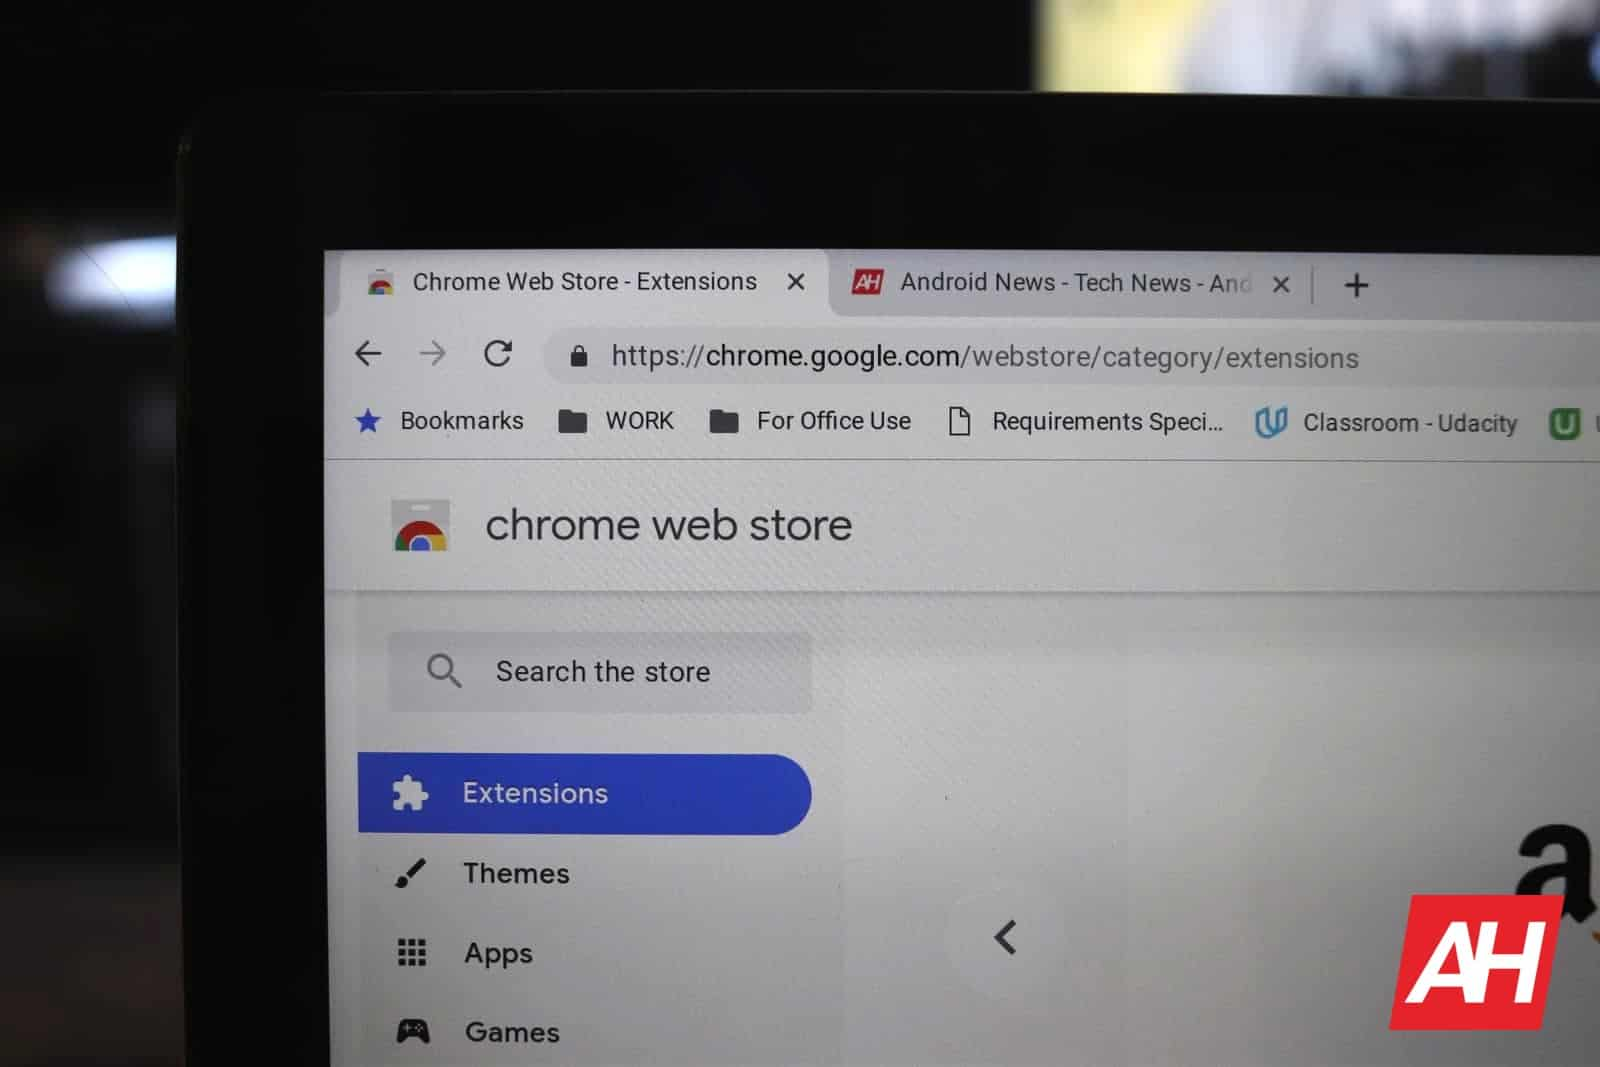 Chrome Web Store Extensions AH 2019